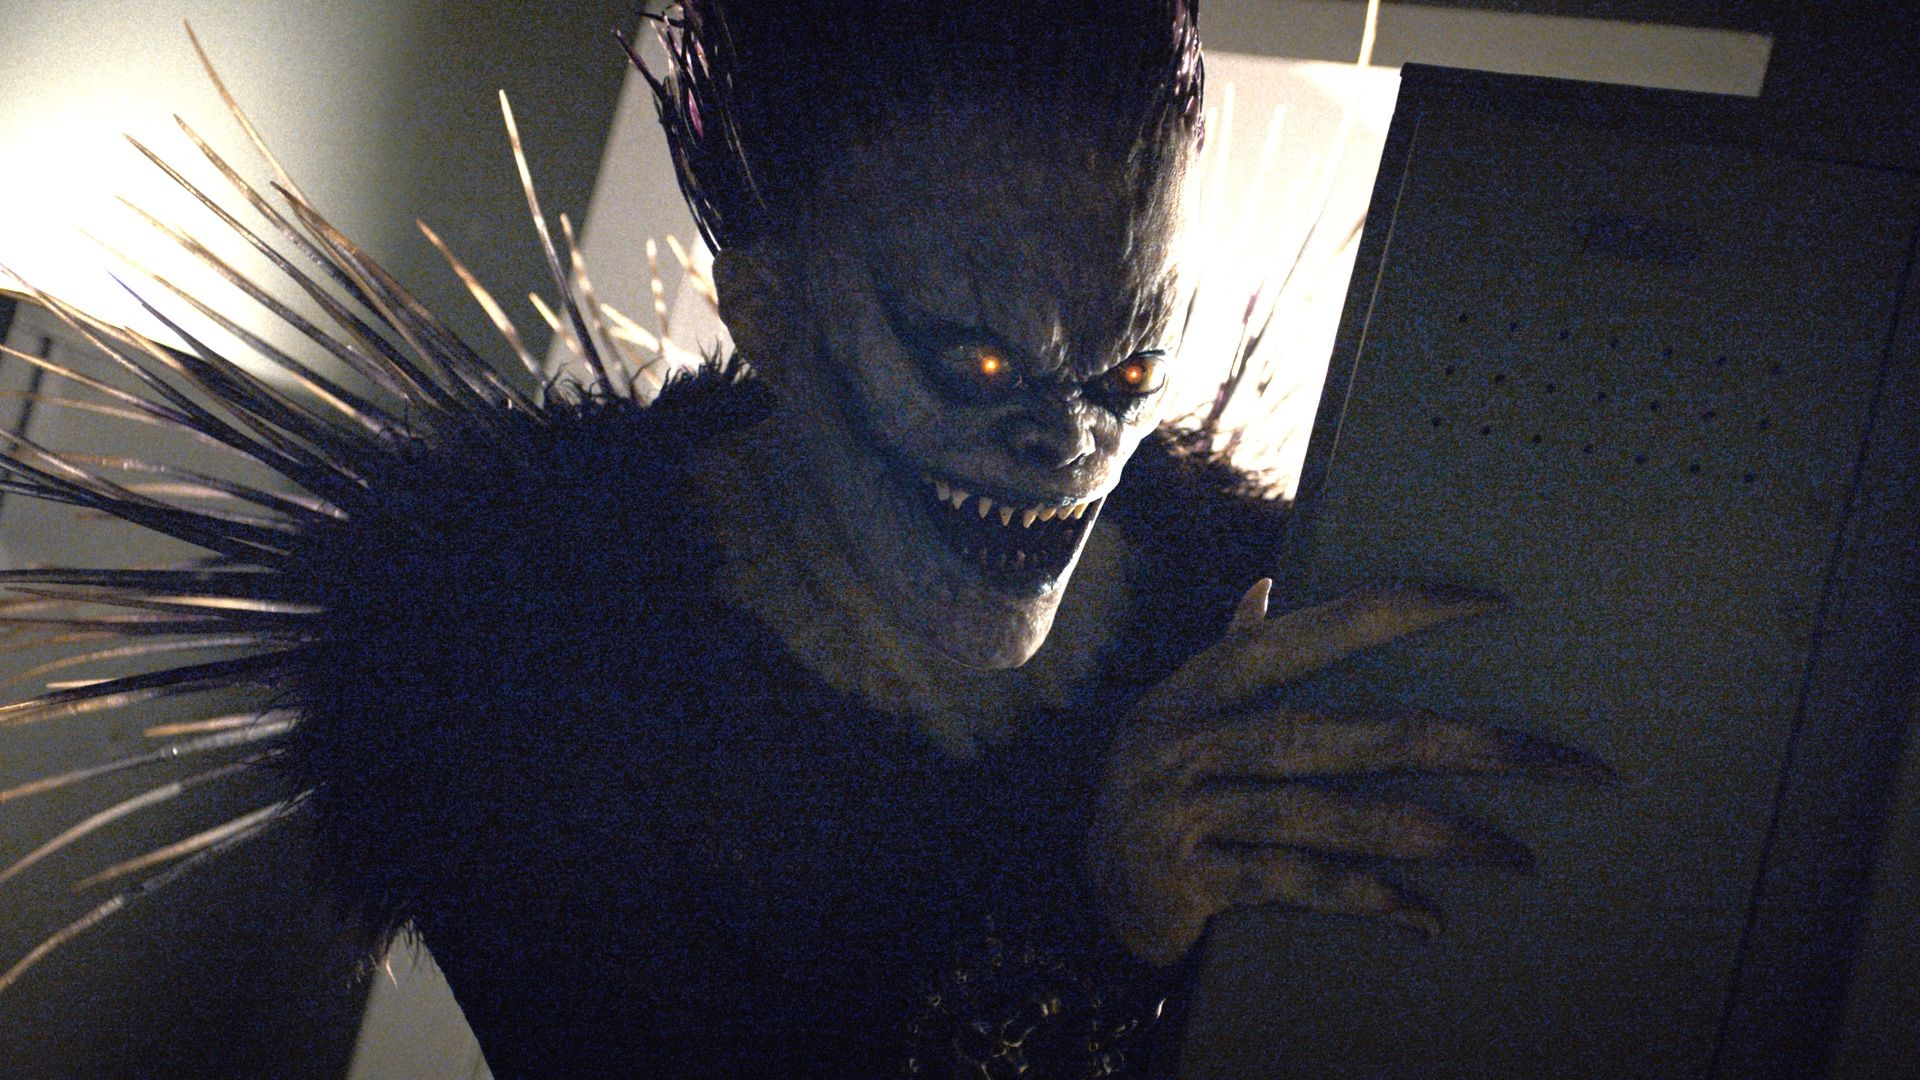 Candy Falls Live Wallpaper Death Note 2 Movie Cast Characters Release Date Plot